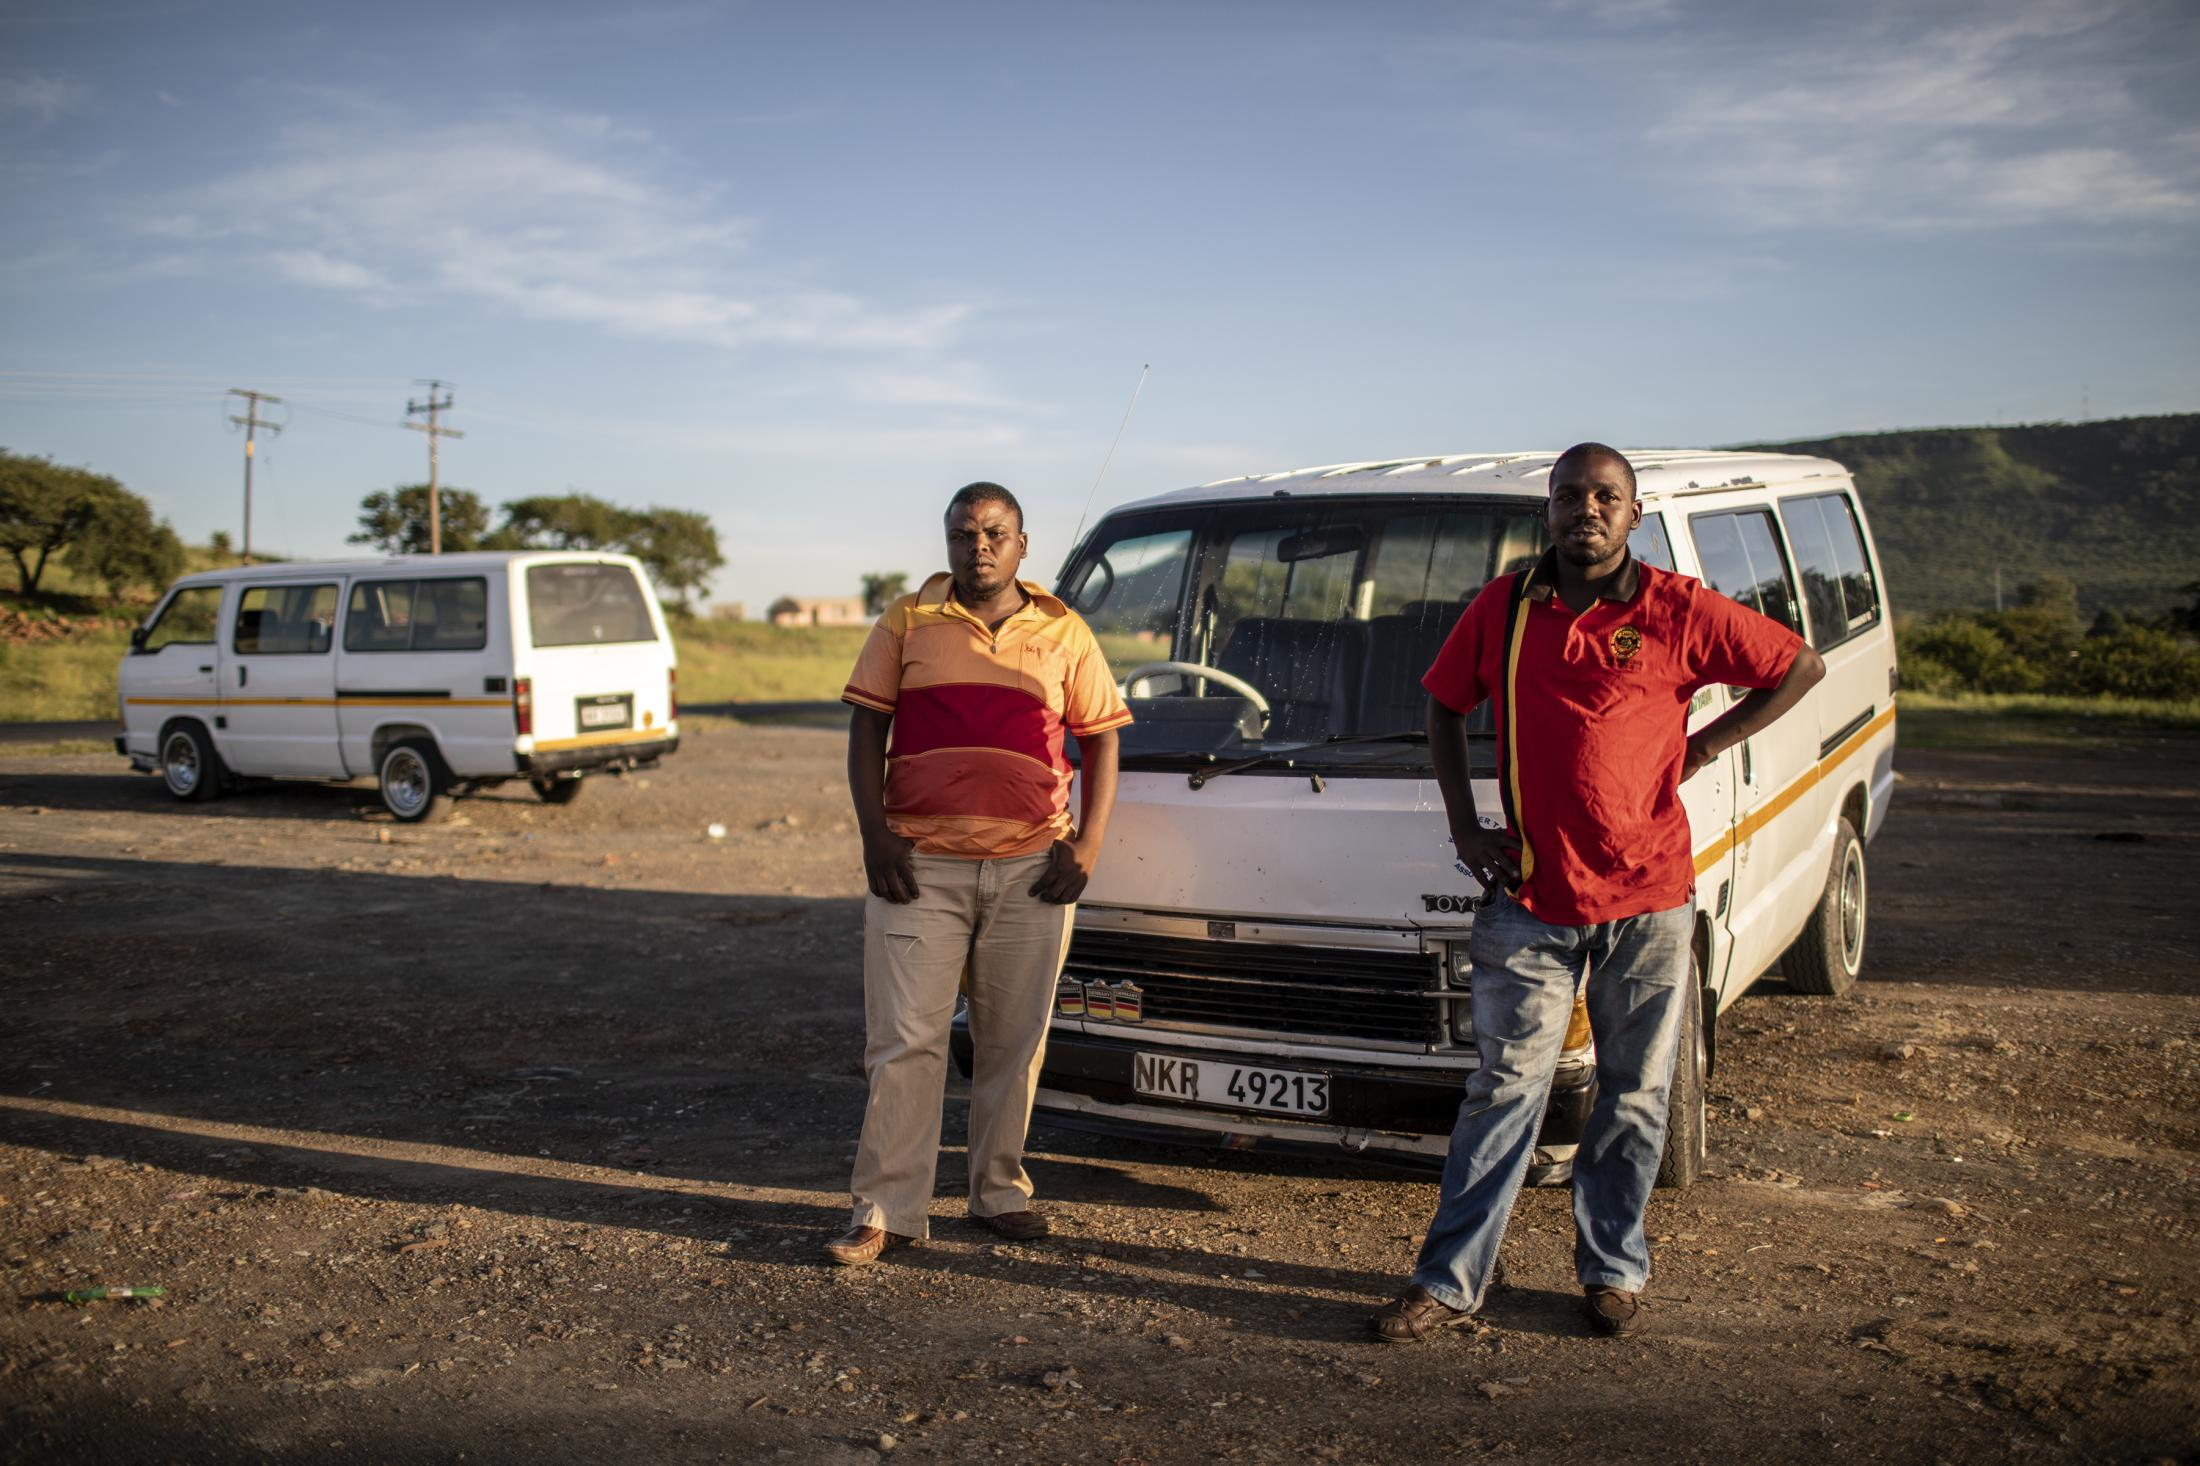 16 February 2020: Taxi drivers Sakile Hlubi (30) and Mandla Hlatshwayo (27) wait to do their next round of driving to pick up and drop off workers early in the morning in Ezakheni, Ladysmith, Kwa-Zulu Natal. They tell of how Joseph Shabalala and the music of Ladysmith Black Mambazo made them proud to be from the town.